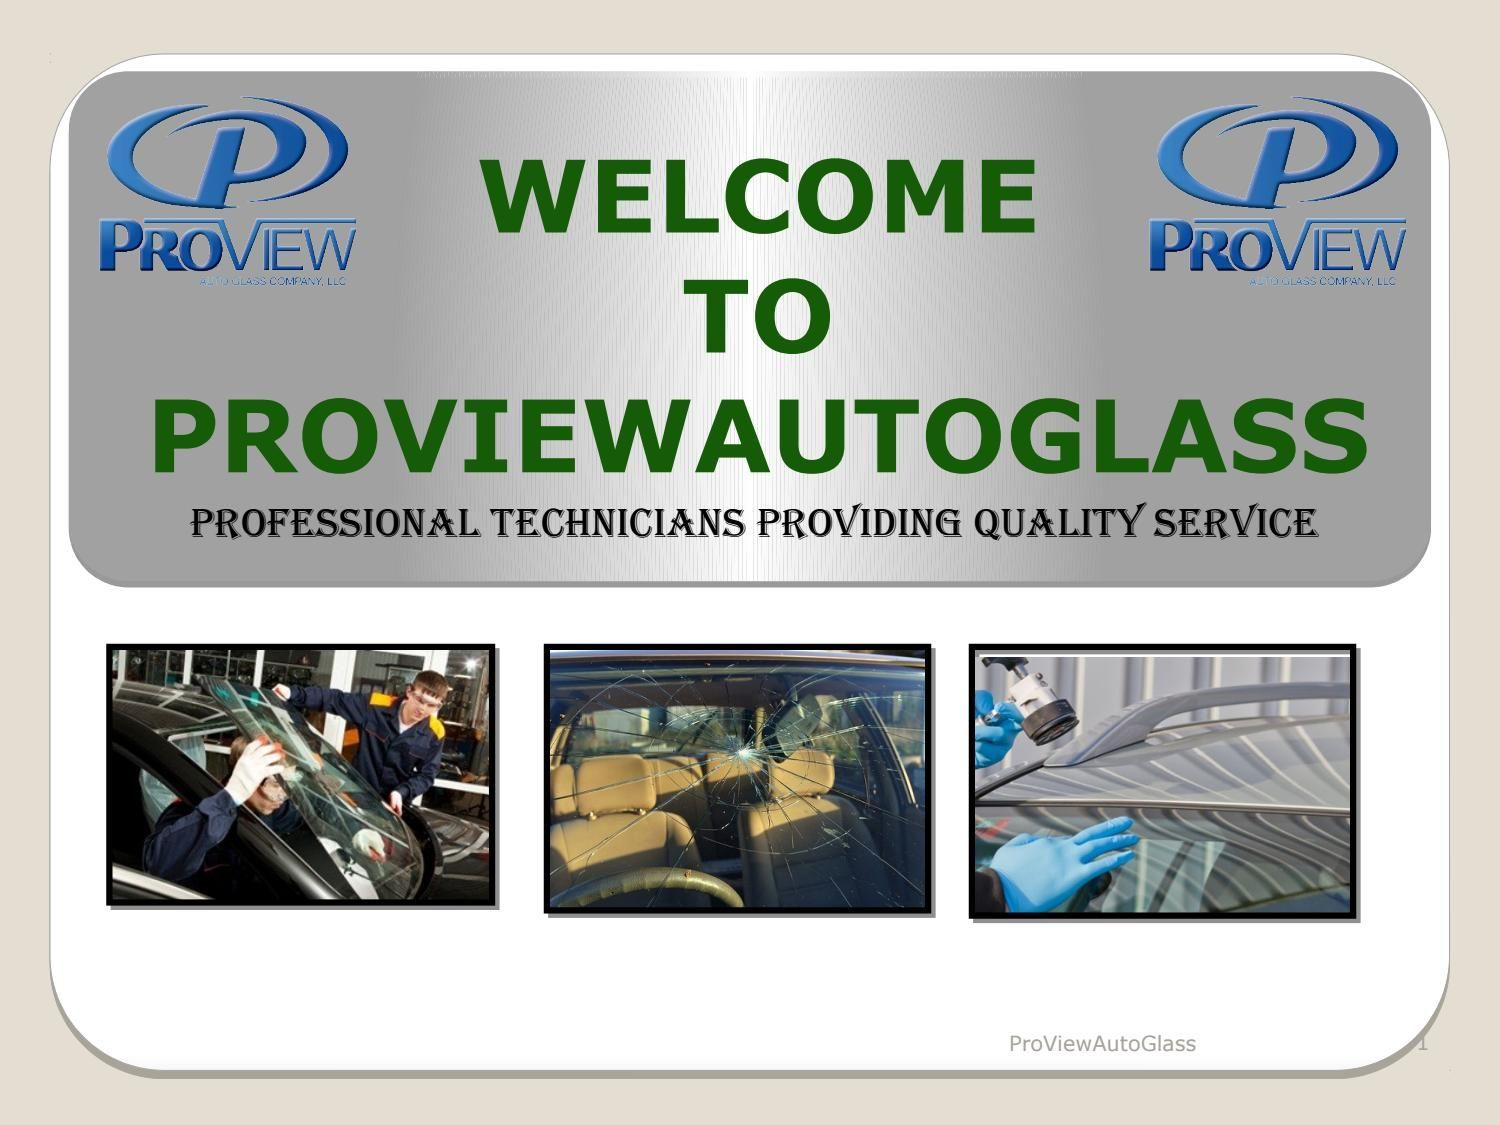 Best Windshield Replacement Tempe Az #glassrepair Auto Glass Repair & Windshield Replacement services in Phoenix. We are a 100% mobile auto glass repair and replacement company that works directly with all insurance providers. We are dedicated to serving our customers in the Phoenix valley with quality customer service and a guaranteed satisfaction. #glassrepair